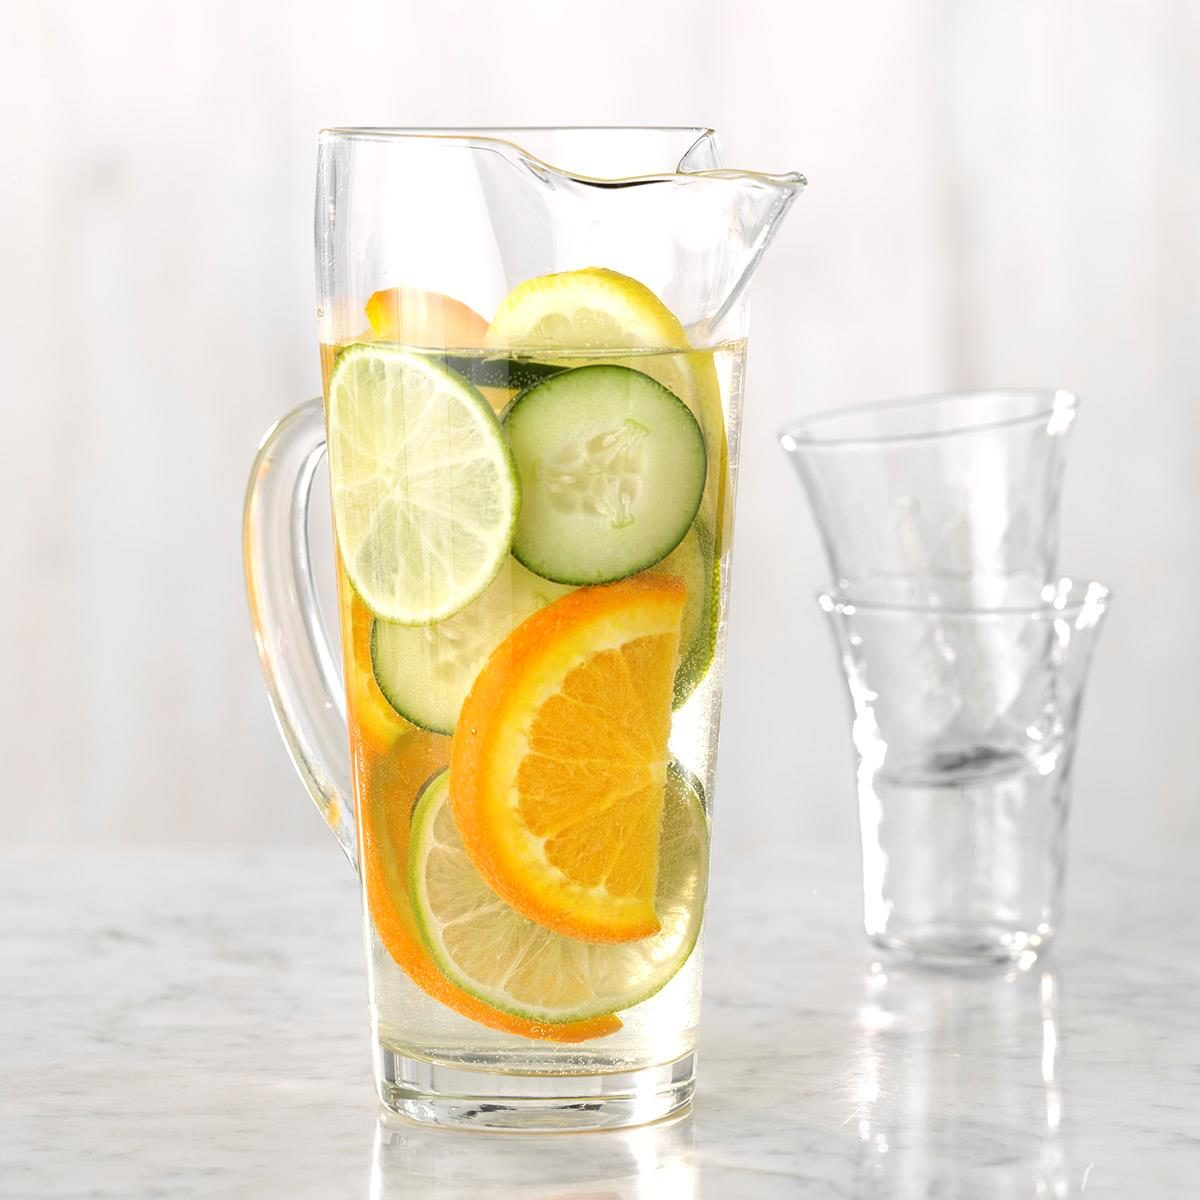 Citrus and Cucumber Infused Water Recipe  Taste of Home